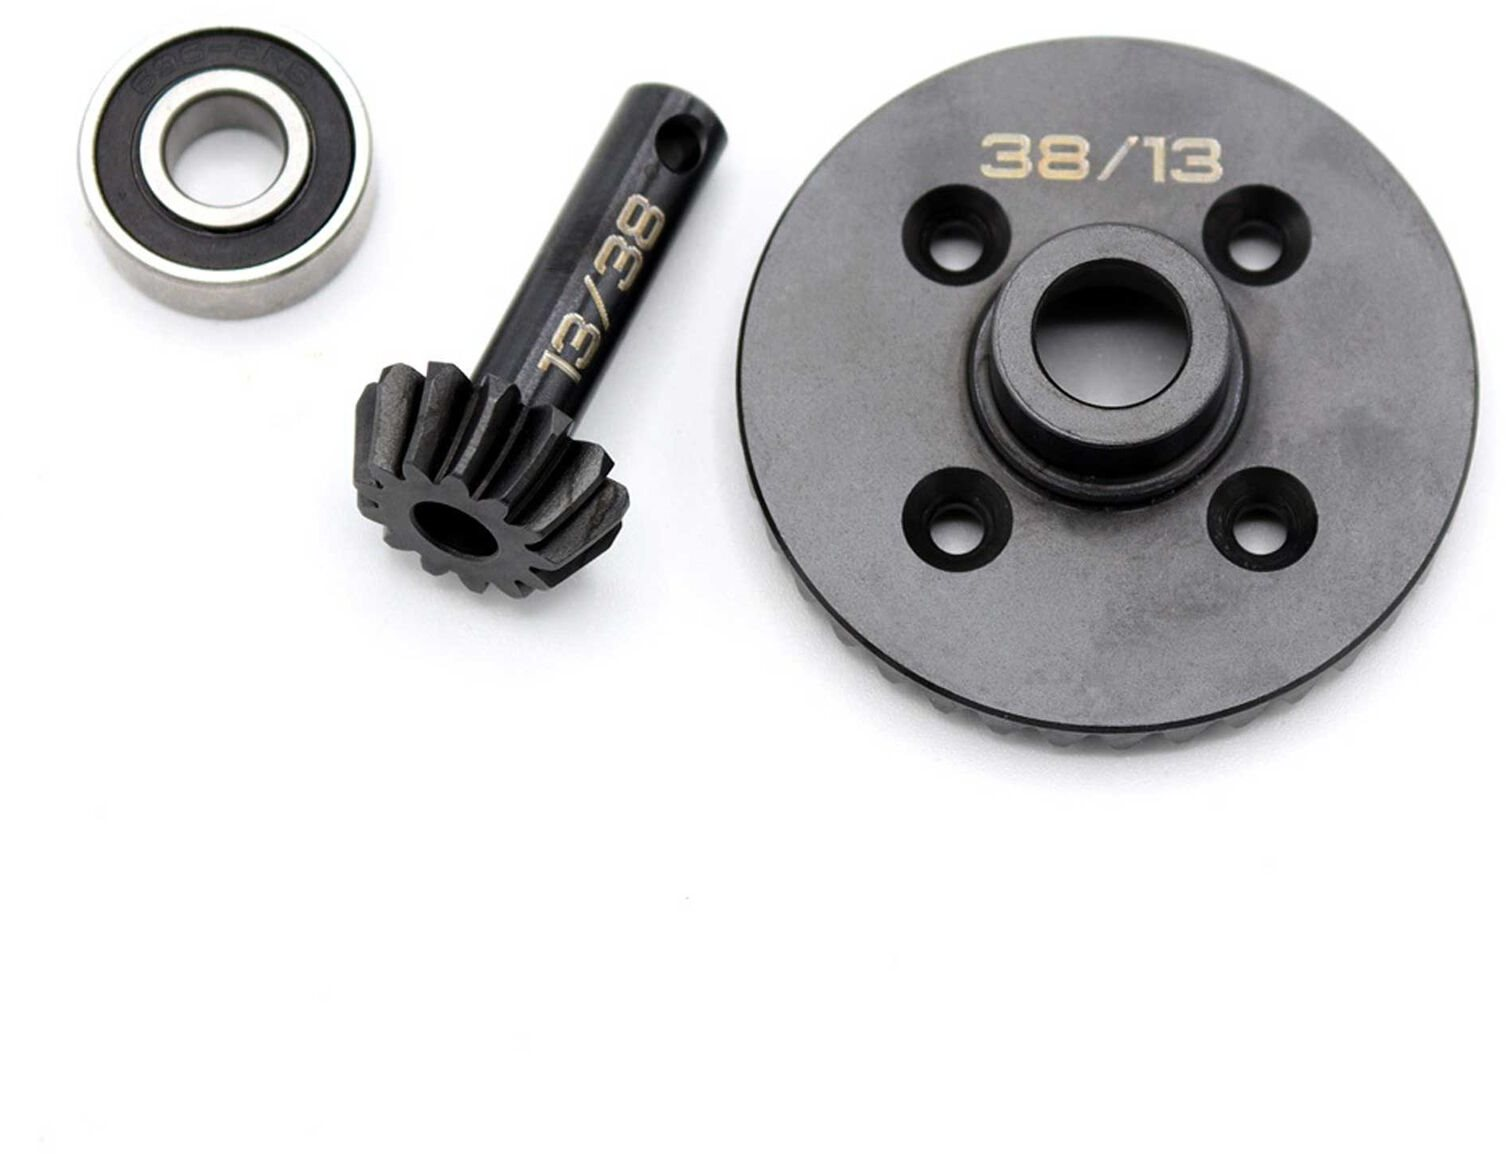 Vanquish Products Incision AR14B Gear Set, 38/13: RBX10 Ryft